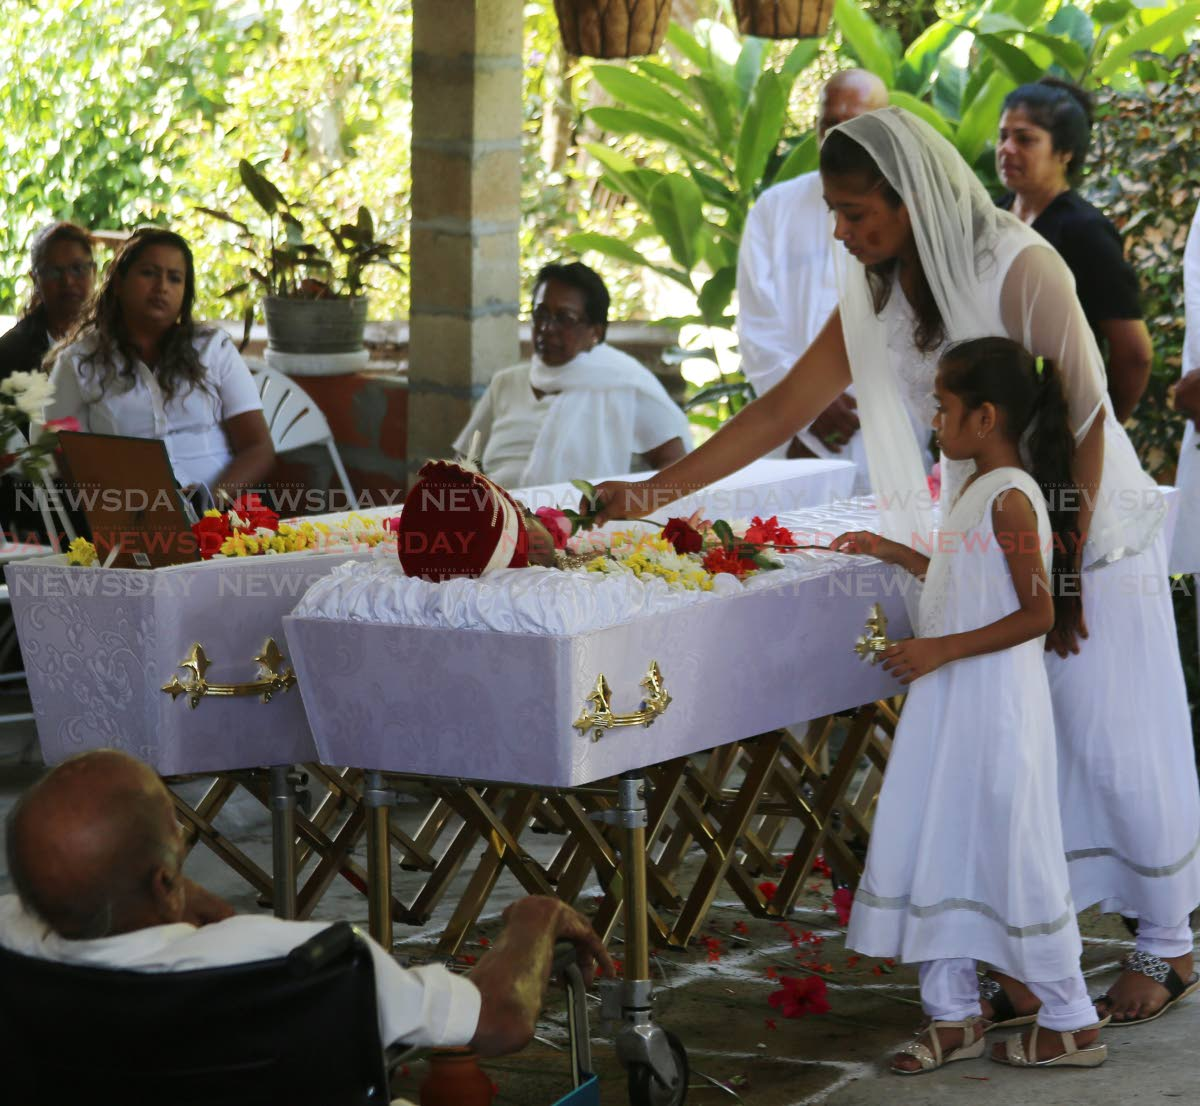 Nikesh Singh, with her daughter Rianna Singh, places flowers in the coffin at the funeral of her husband at Suchit Trace , Penal this morning.  Photo by Vashti Sing